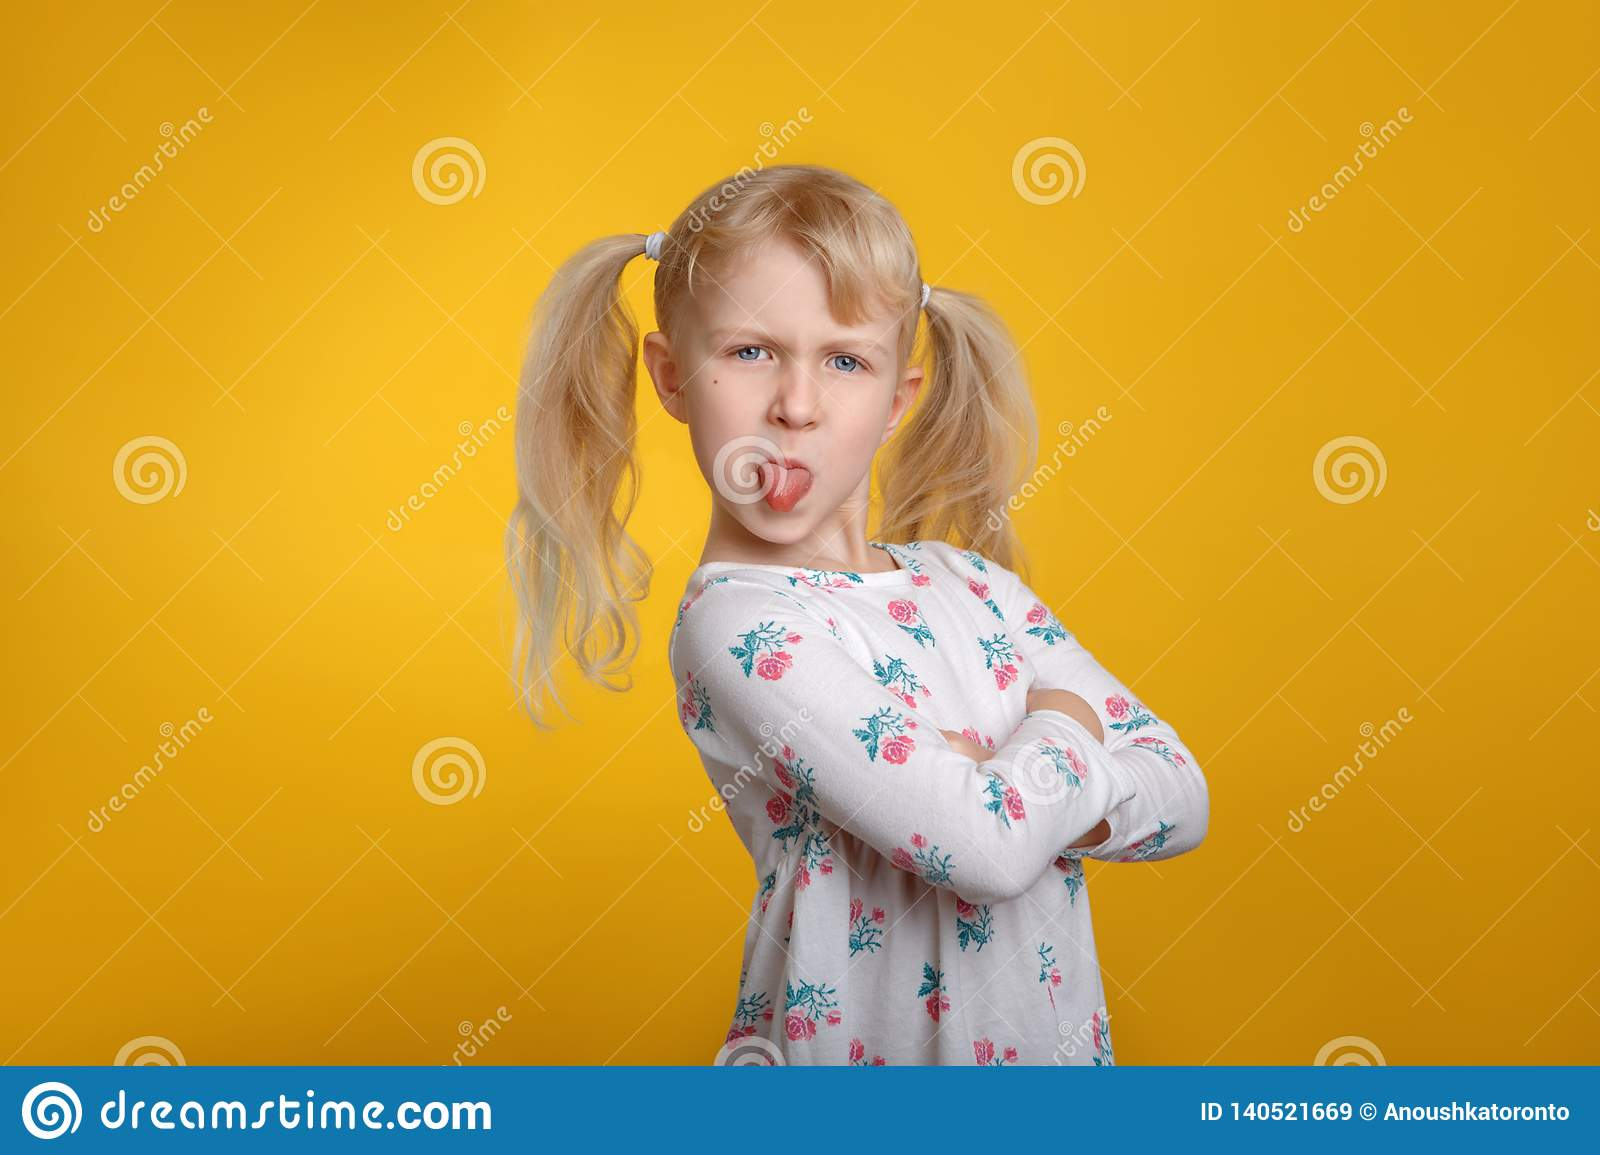 Grumpy angry Caucasian blonde girl with blue eyes in white dress posing in studio on yellow background